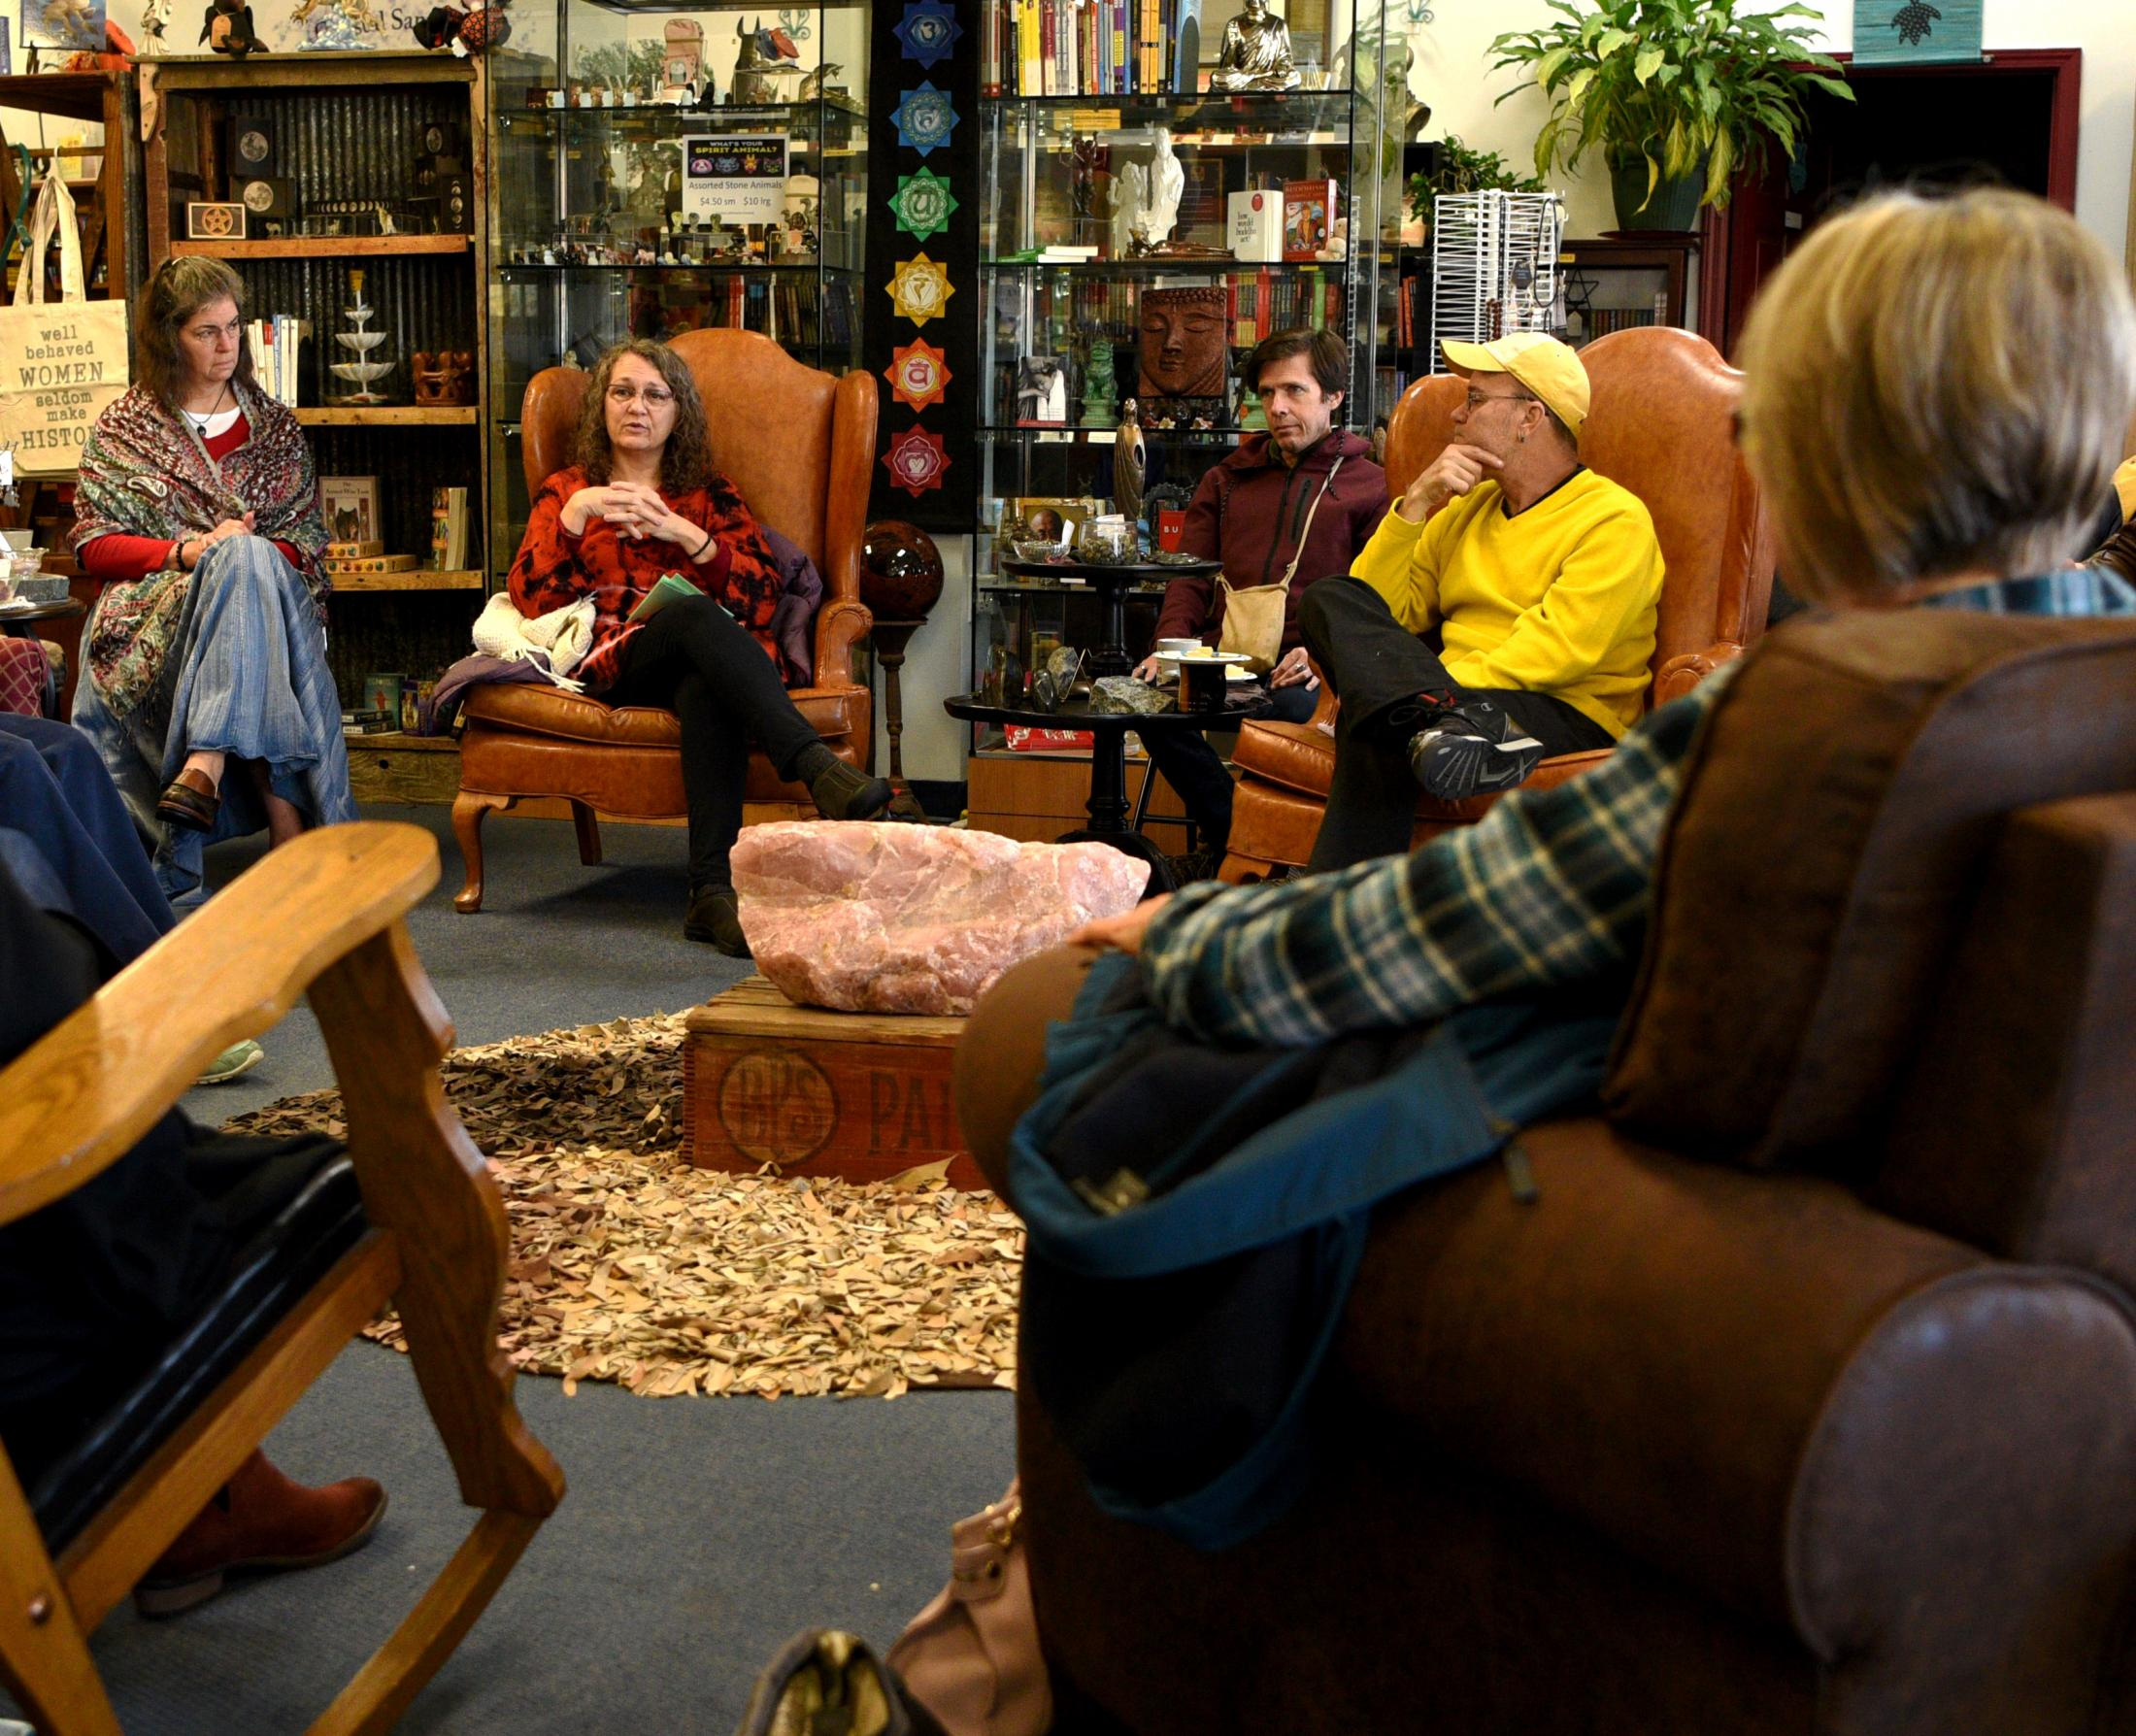 """Waddell leads a discussion on """"non-western ways of processing grief"""" at Heart, Body, and Soul's event called Coffee and Conversations on Nov. 2, 2019, in Columbia, Missouri. Community member's discussed grievances that ranged from just getting older to the loss of a loved one. """"Life is difficult to manage individually,"""" Waddell said. """"Westen ways of handling hardships too often isolates people with their problems but that is a time we need to rely on community more than ever."""""""